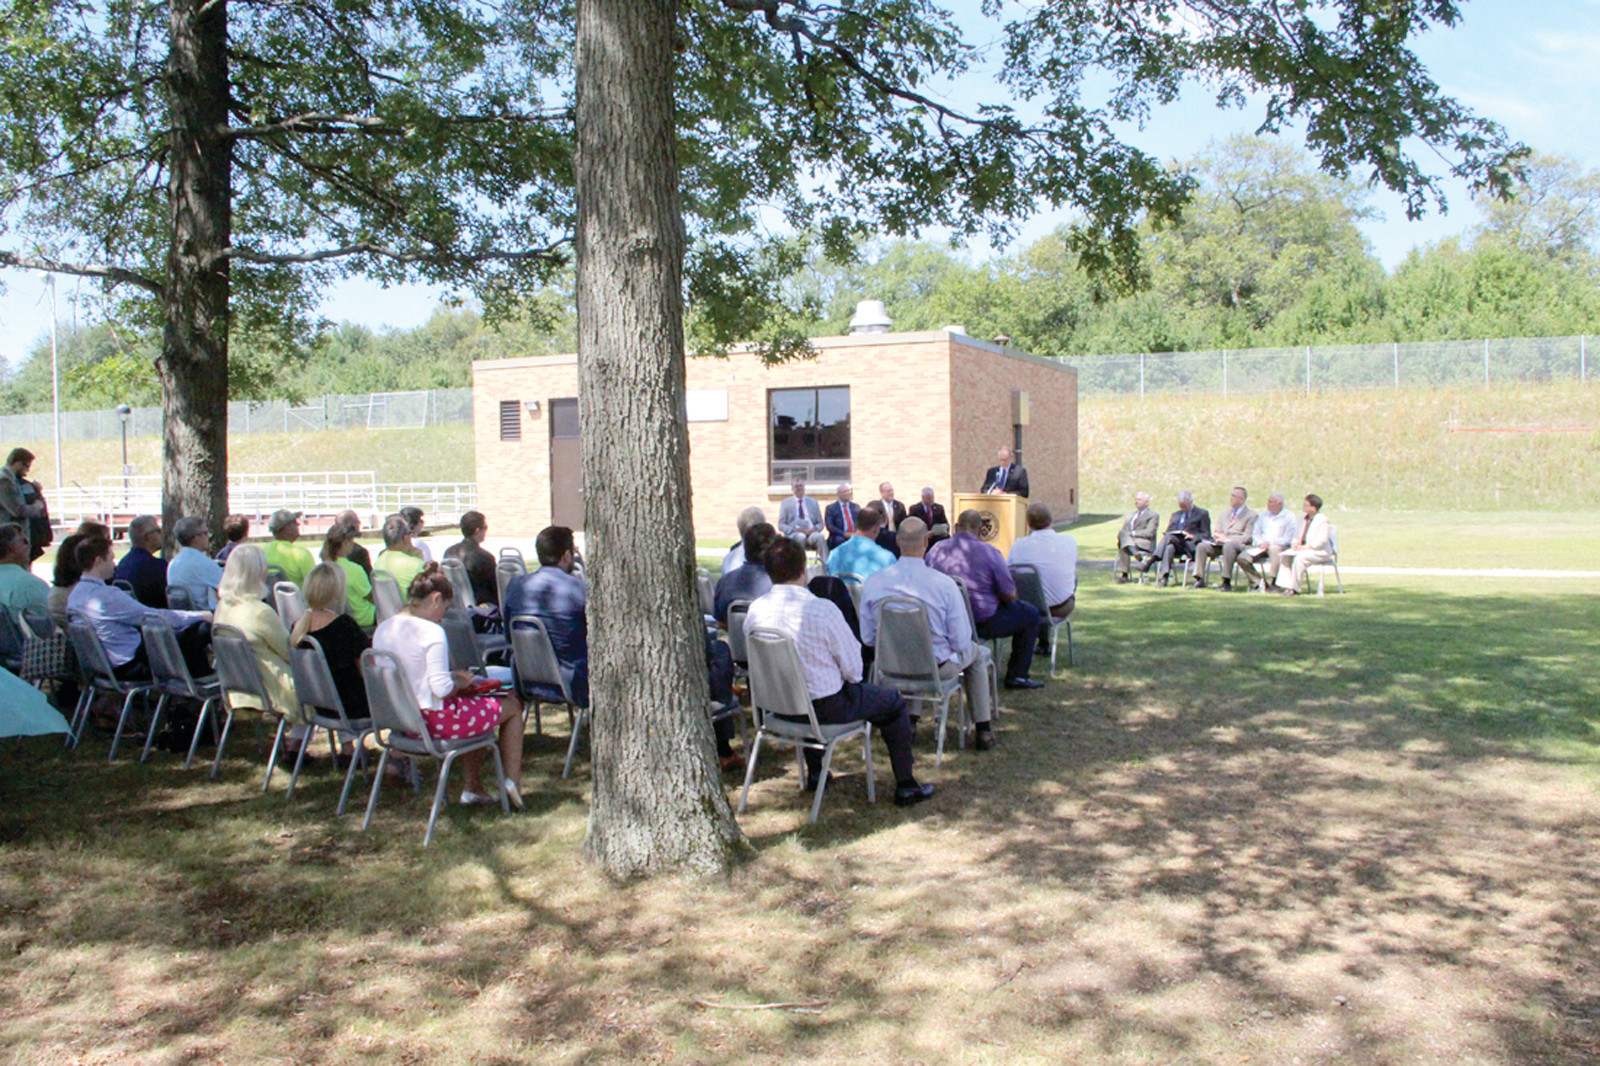 NON-WASTEFUL SPENDING: Attendees gathered at the Warwick wastewater treatment facility on Thursday, Aug. 17 to join a celebration that included municipal employees and local, state and federal officials in regards to $20 million in improvements made at the site.